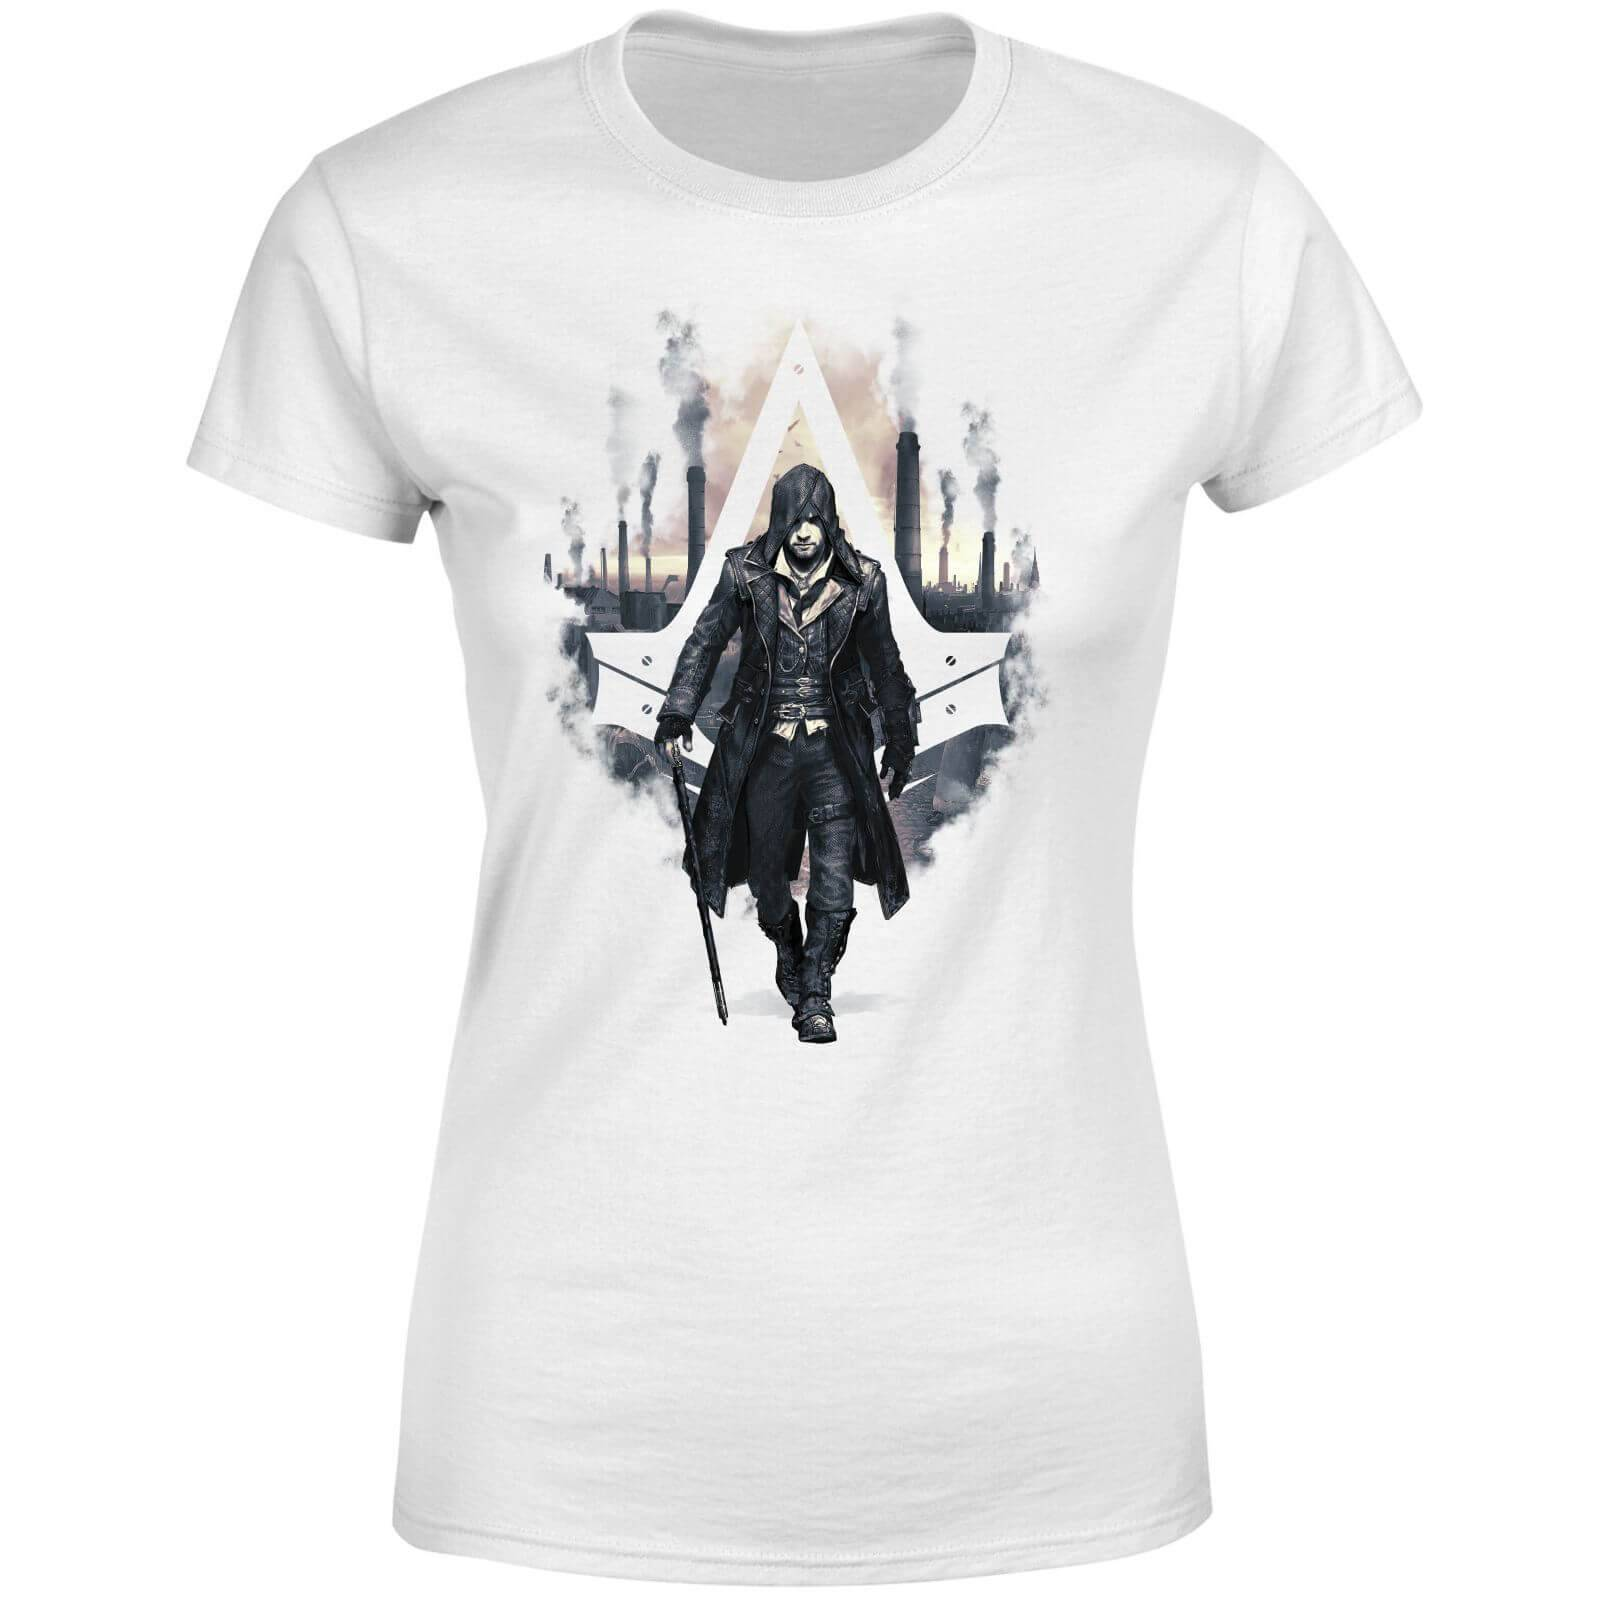 Assassin's Creed T-Shirt Femme London Skyline Assassin's Creed Syndicate - Blanc - XL - Blanc